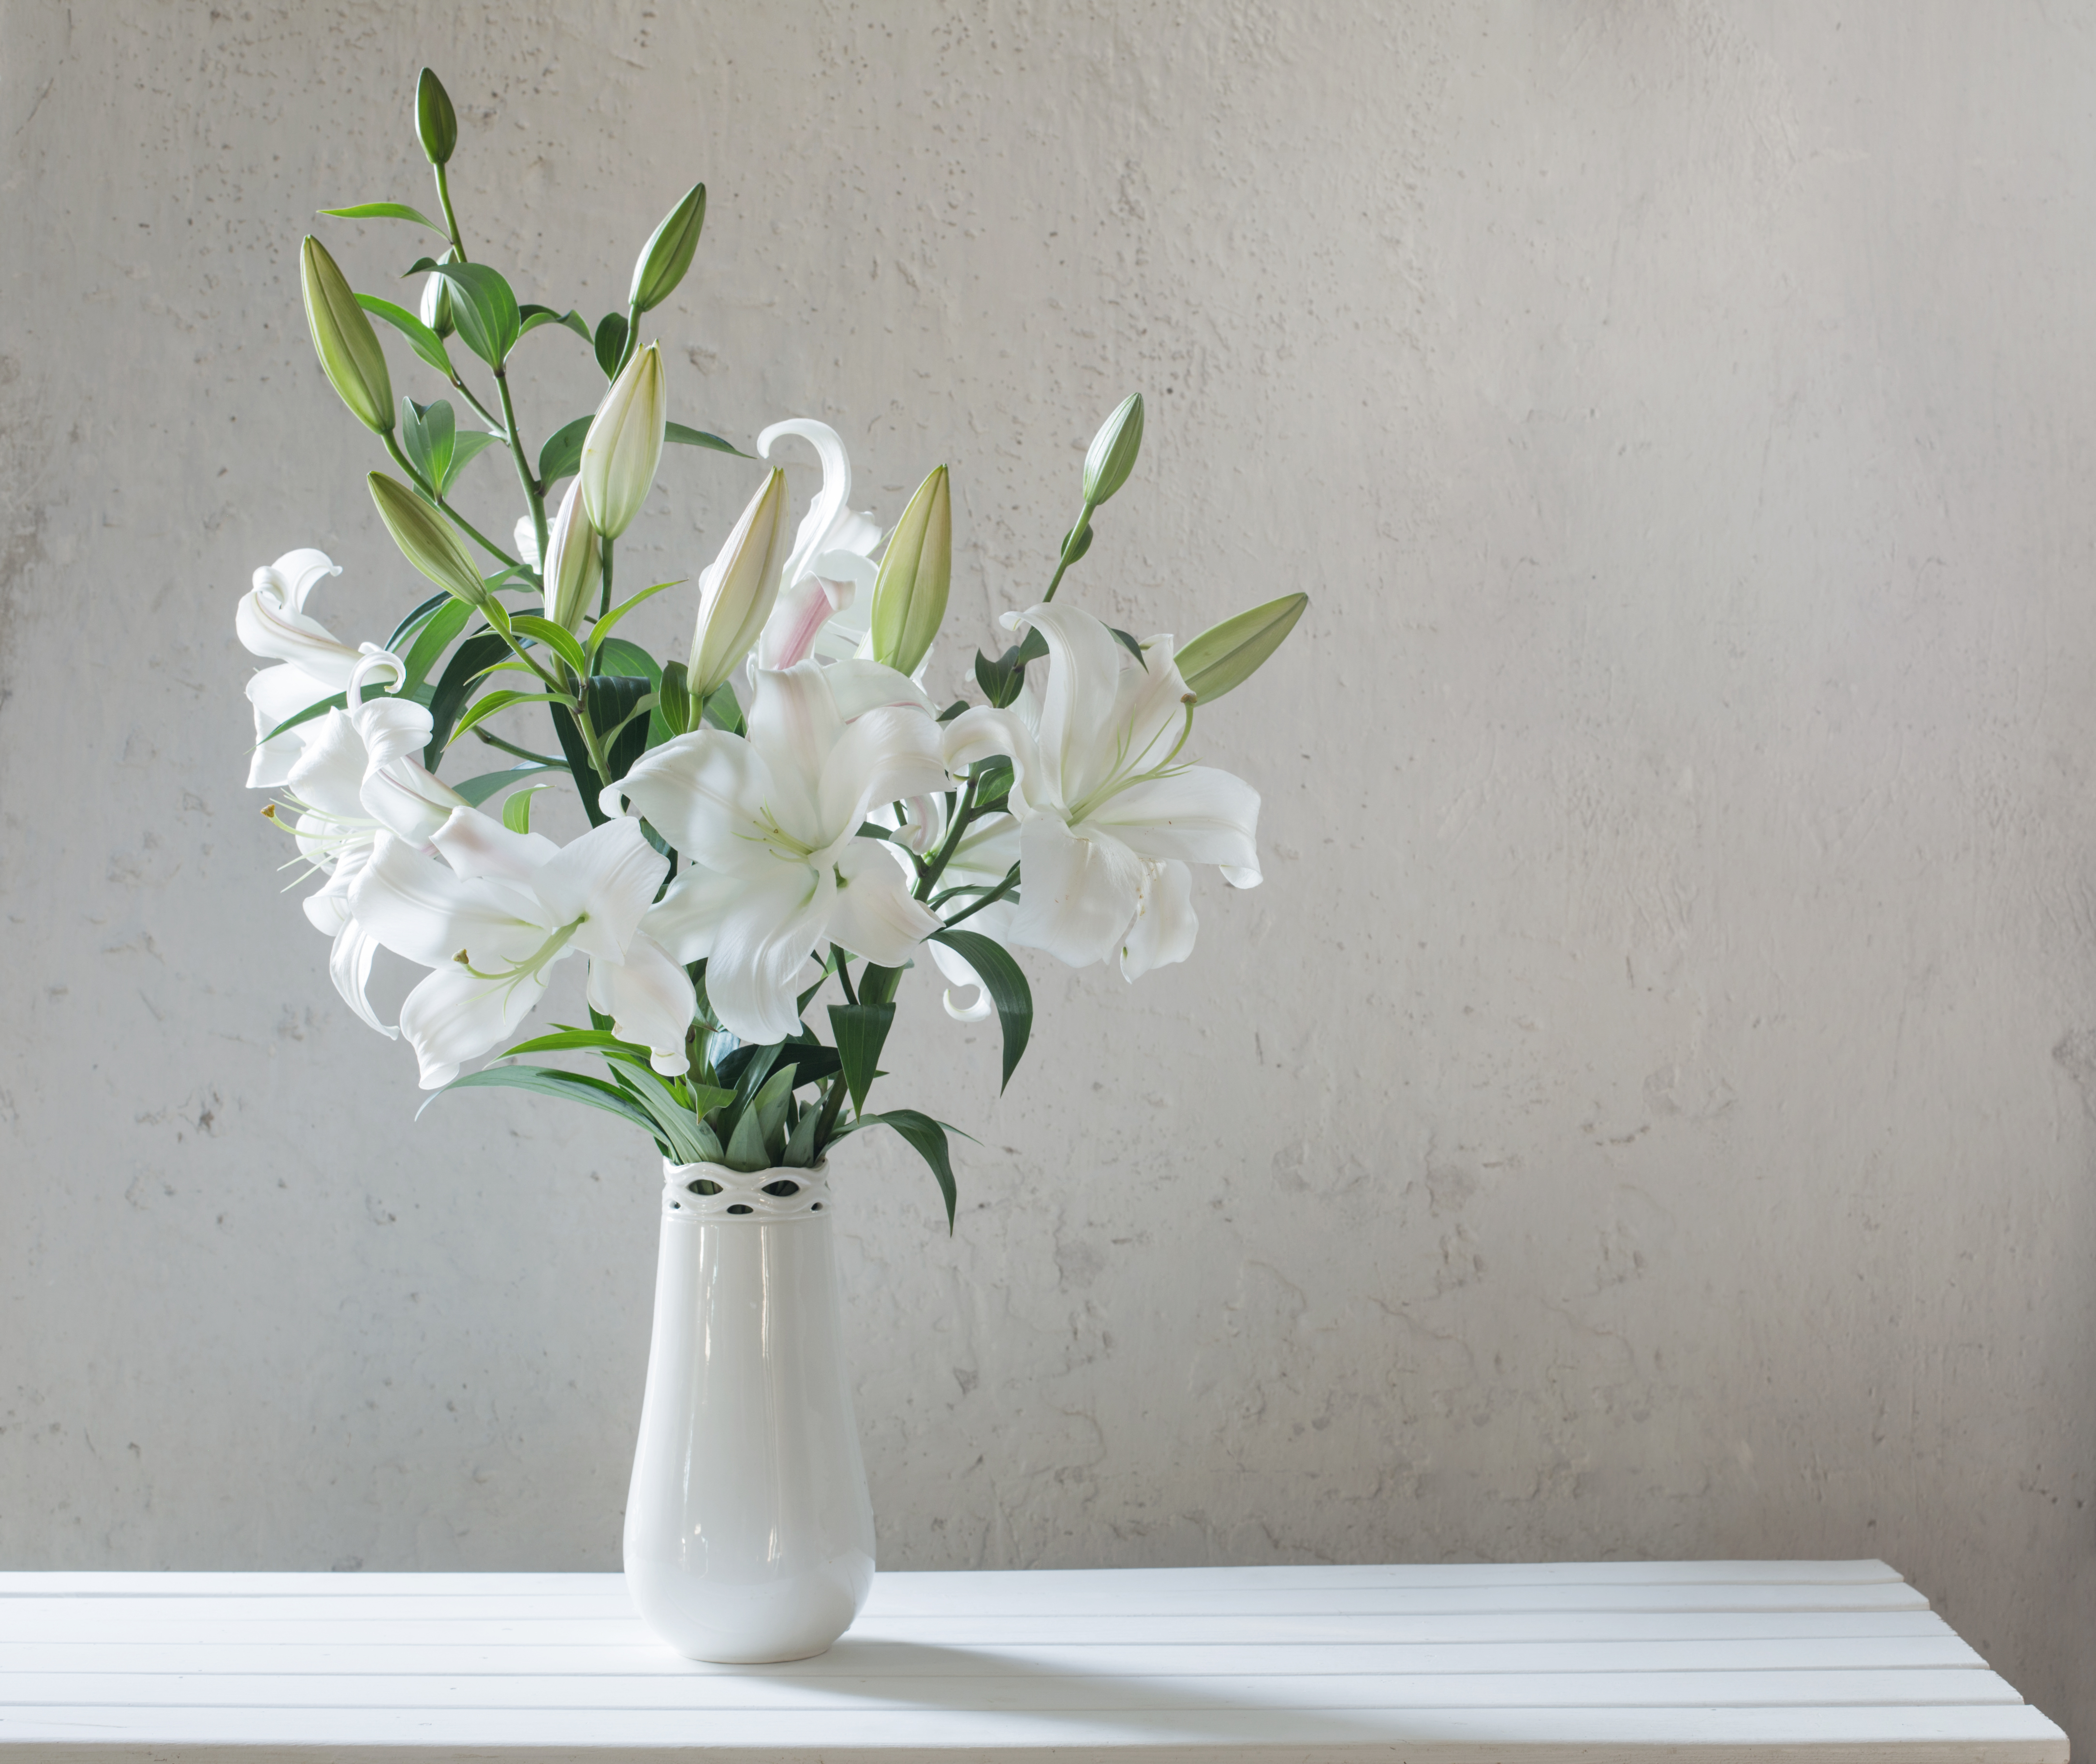 How to Care for Lilies in a Vase & How to Care for Lilies in a Vase | Home Guides | SF Gate